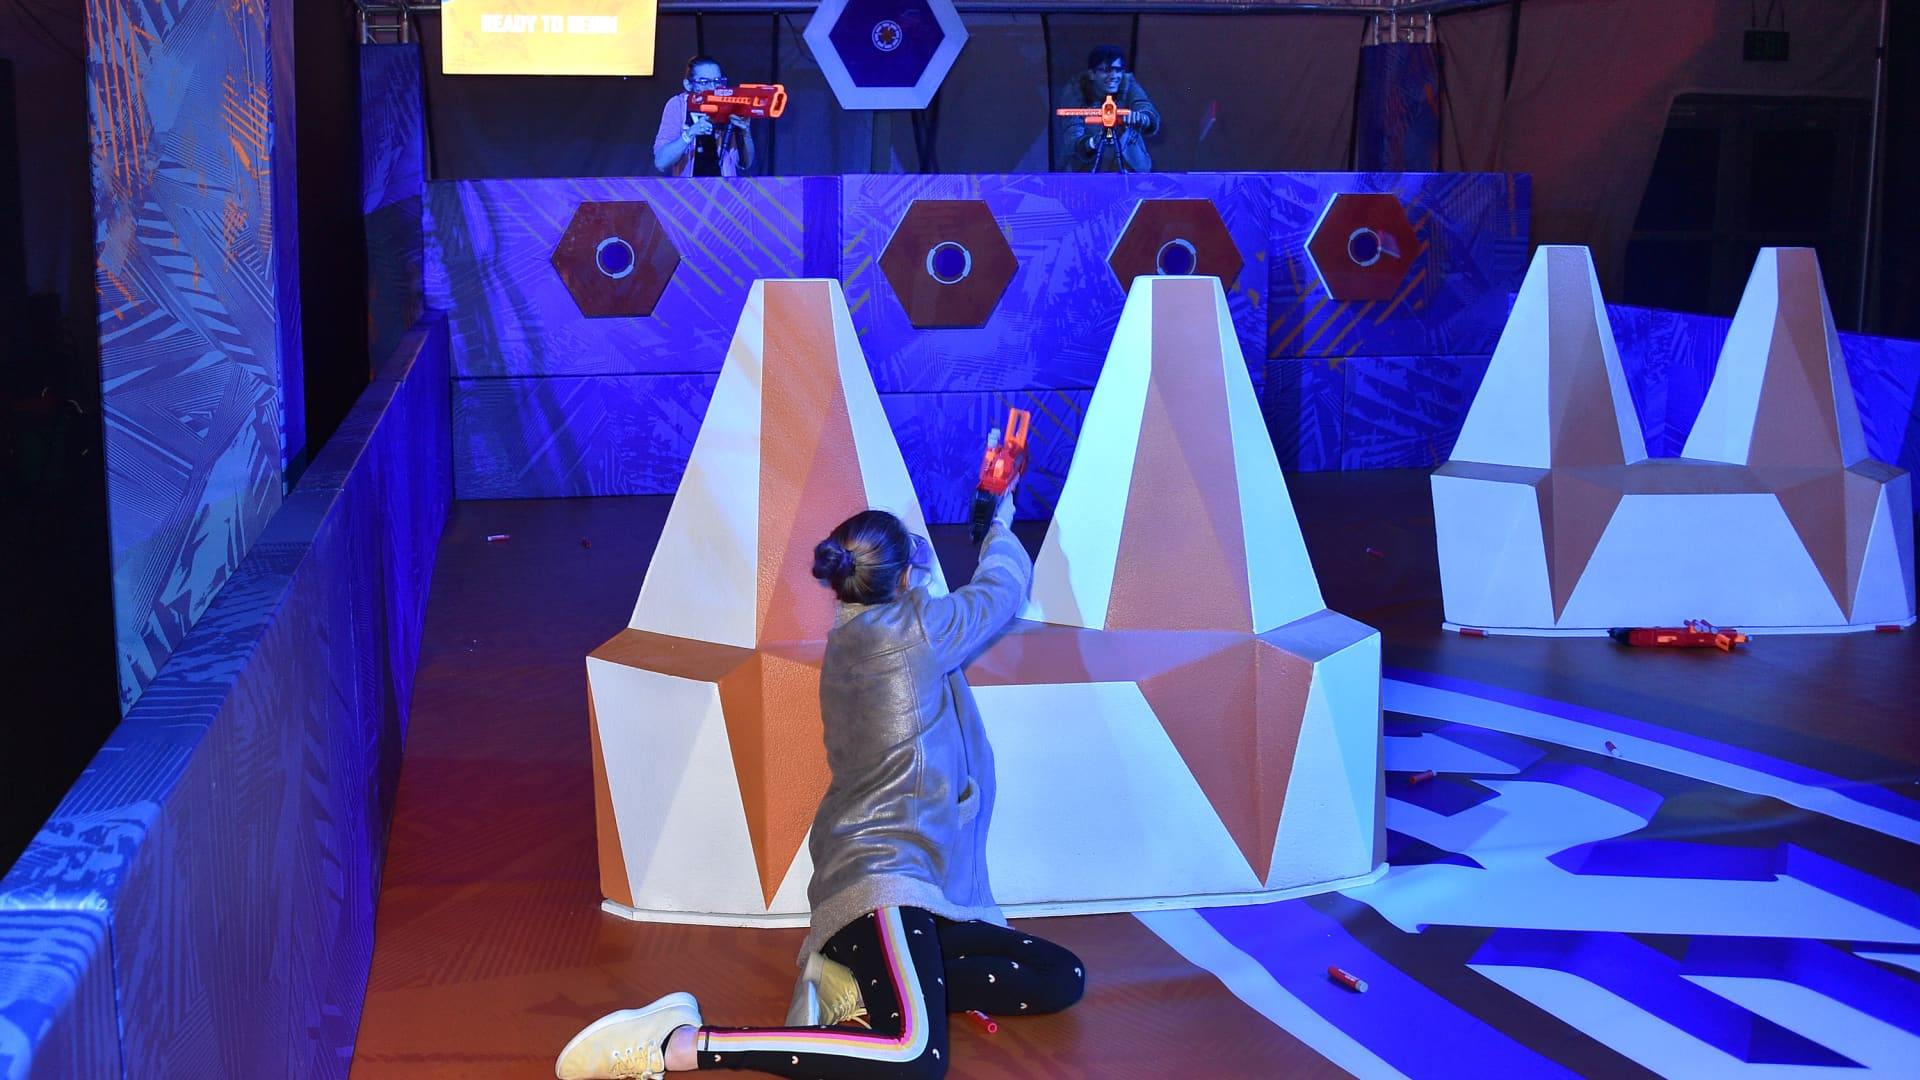 A guest attends the NERF Challenge World Premiere at L.A. Live Event Deck on December 5, 2019 in Los Angeles, California. NERF Challenge is a touring live stage and fan experience that brings the action and competitive fun of the NERF brand to life, and will travel across select US and Canada markets in 2020 following its Los Angeles run.